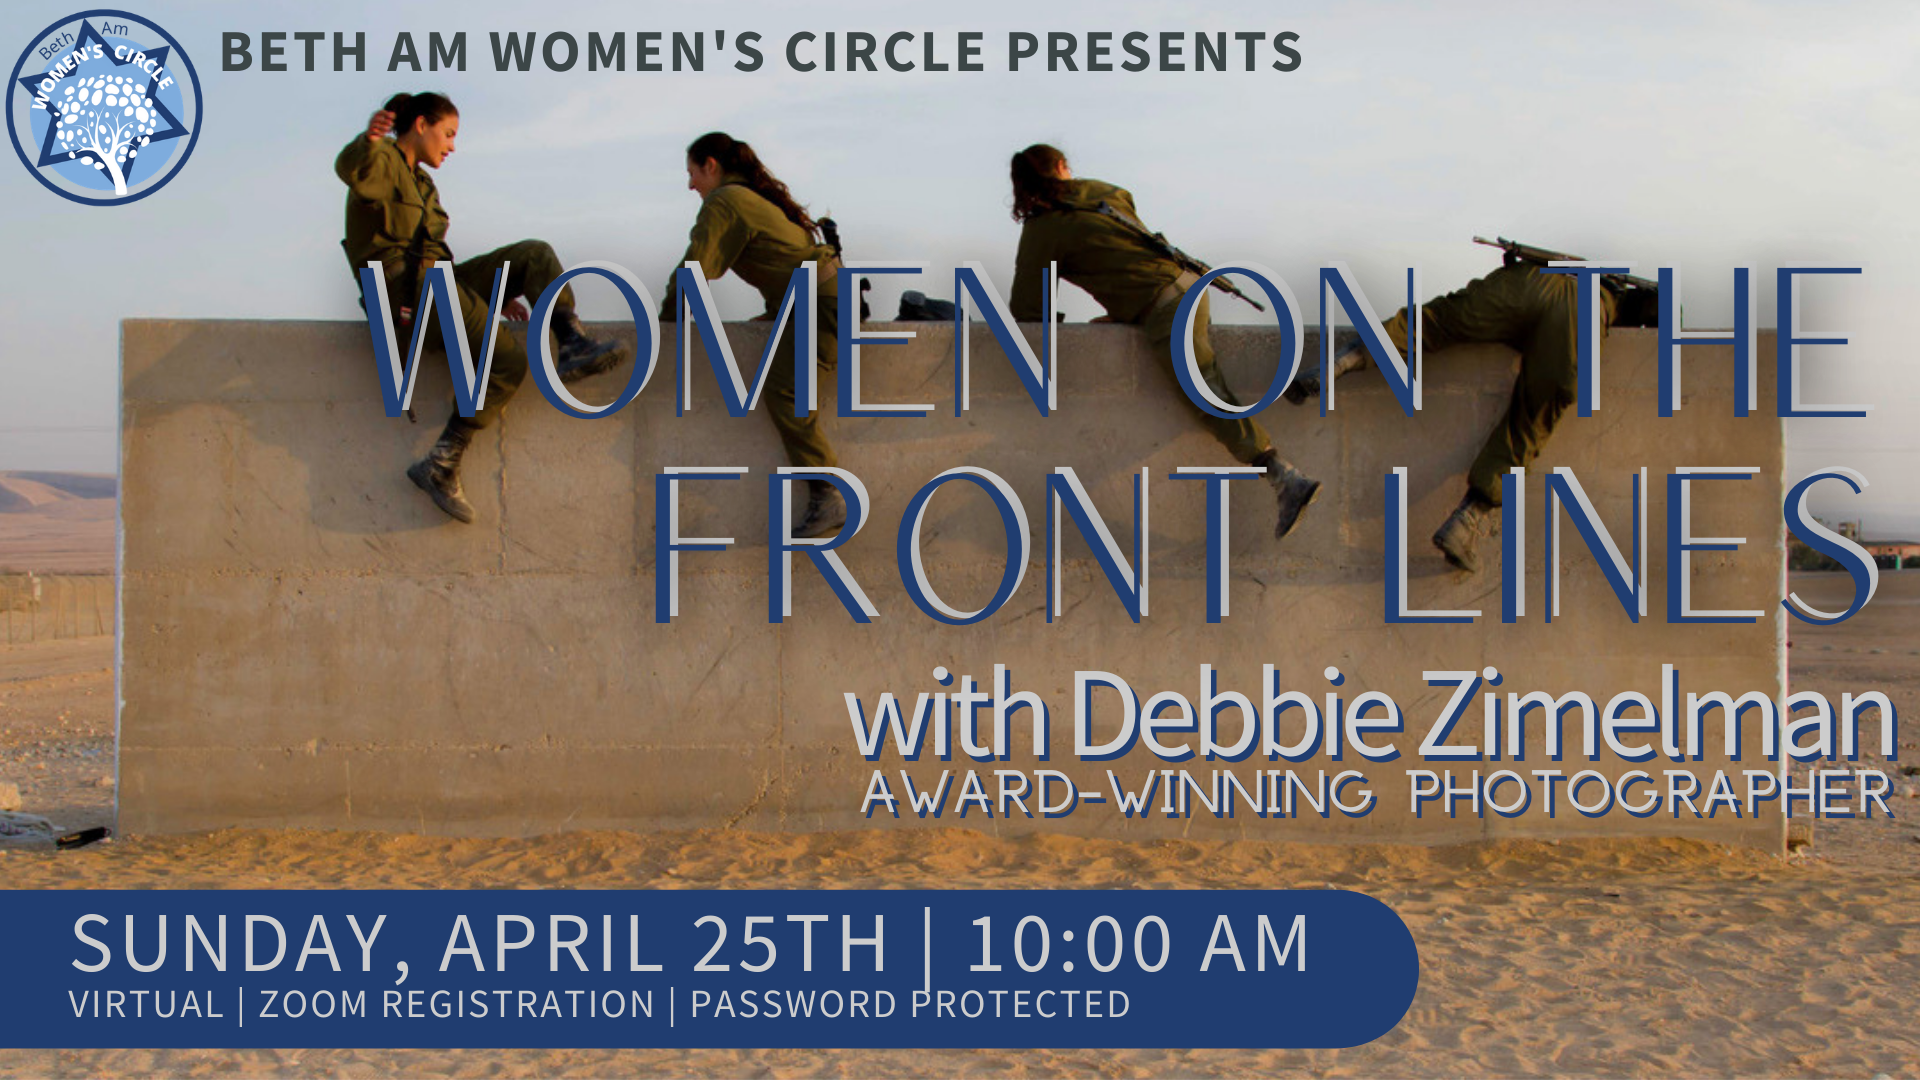 Banner Image for Women On The Front Lines, with Award Winning Photographer, Debbie Zimelman